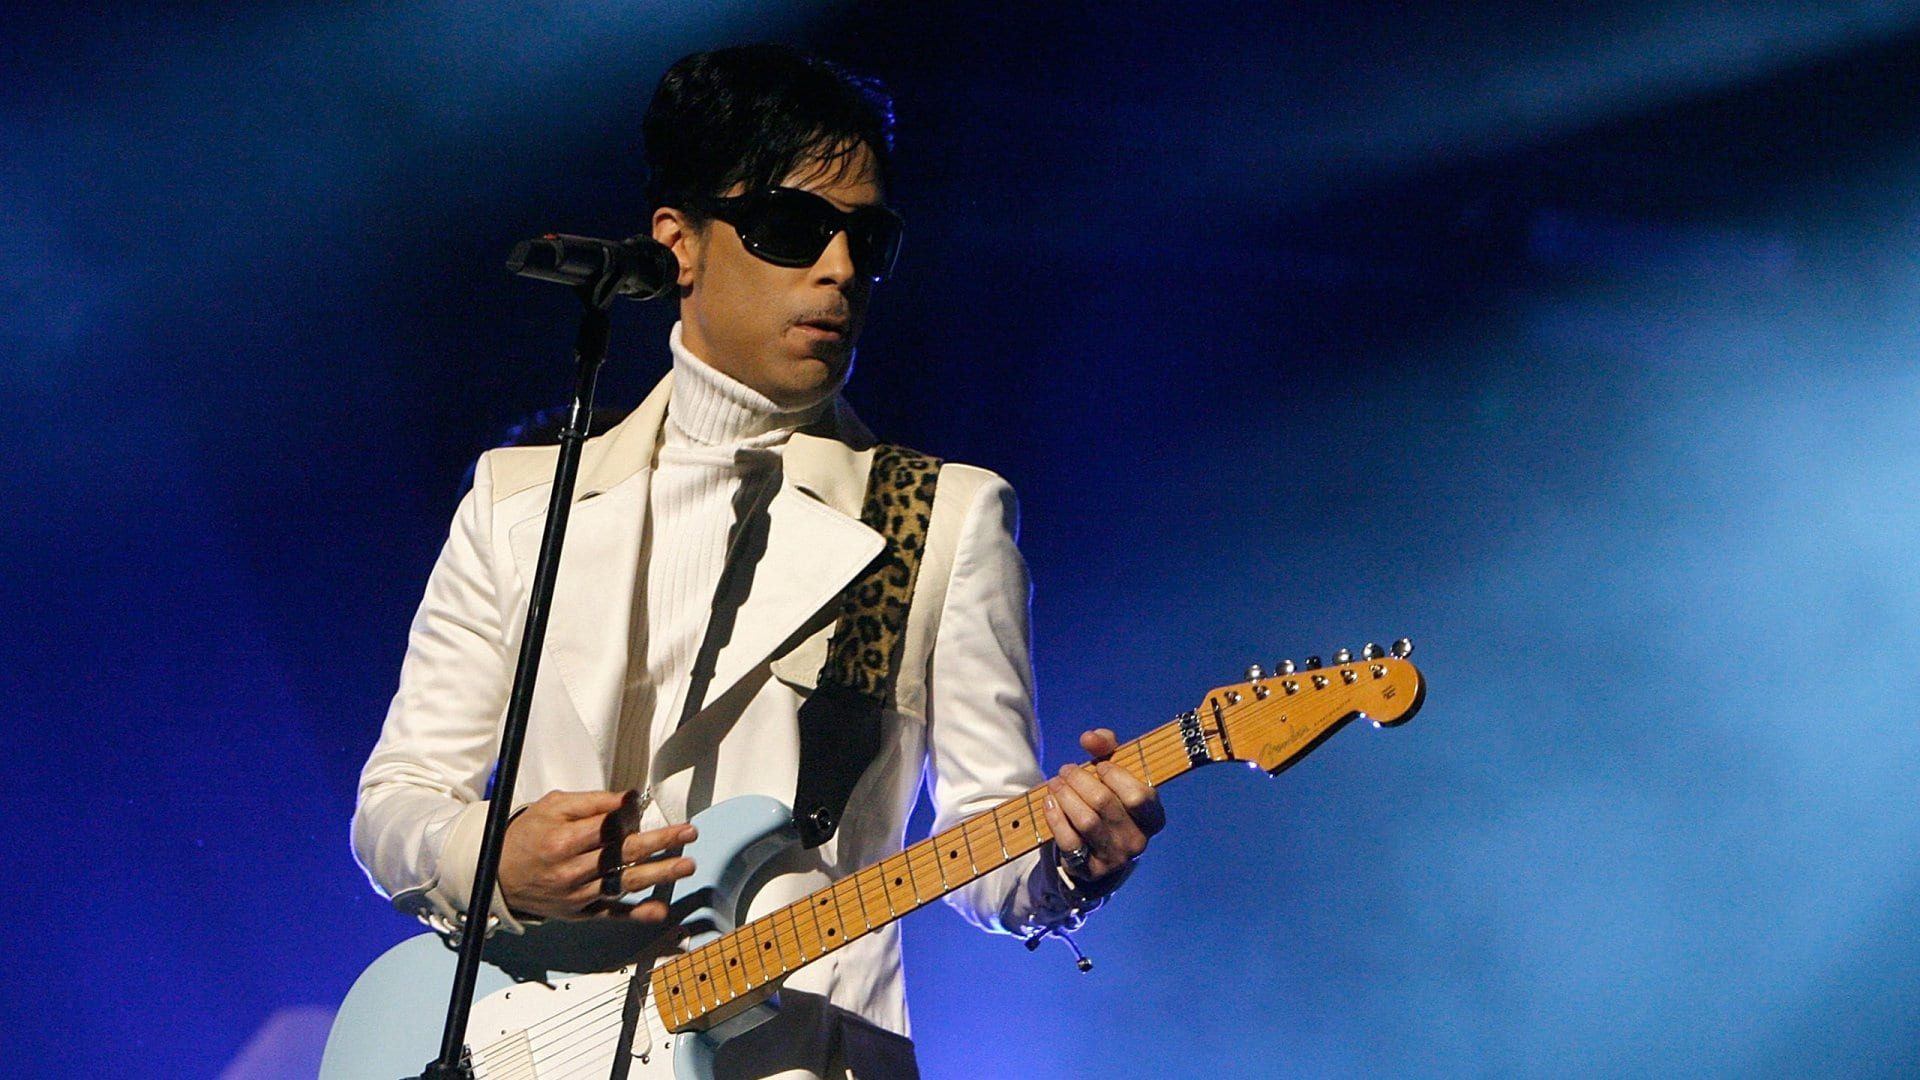 Photos of prince the singer